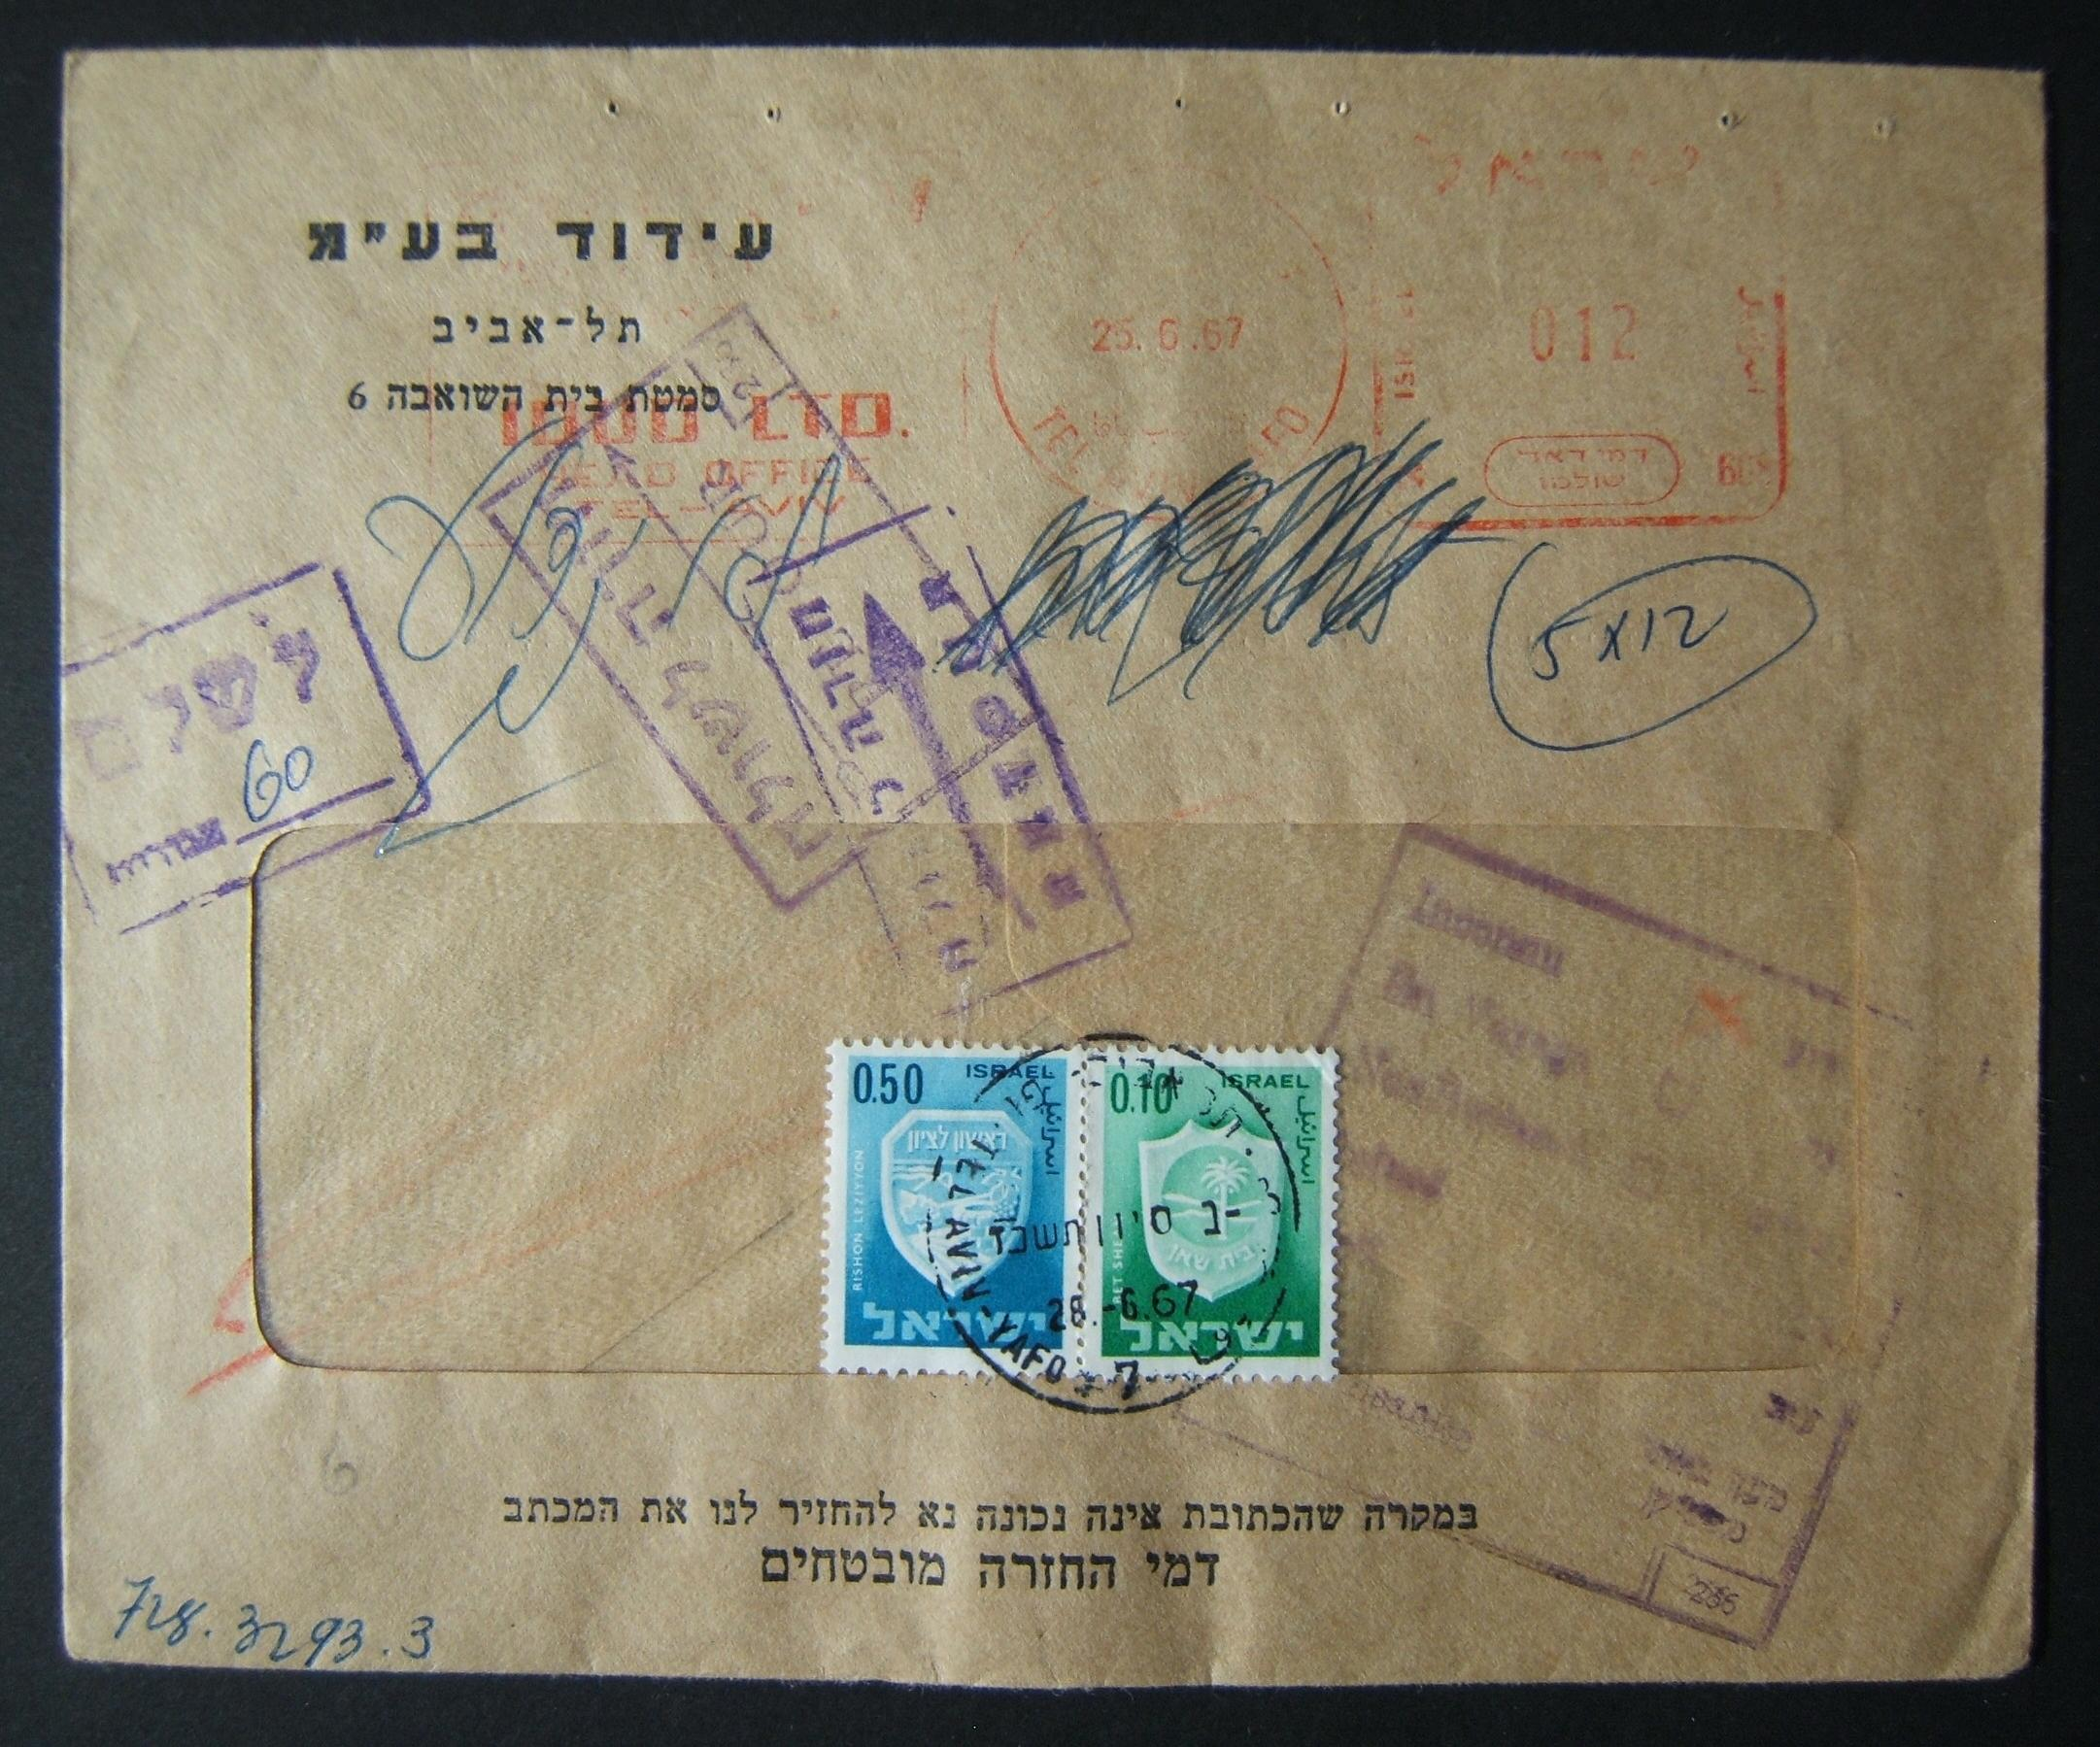 1967 domestic 'top of the pile' taxed franking: 25-6-67 printed matter cover ex TLV branch of Idud Ltd. and franked by meter payment at the DO-12 period 12 Ag PM rate but returned